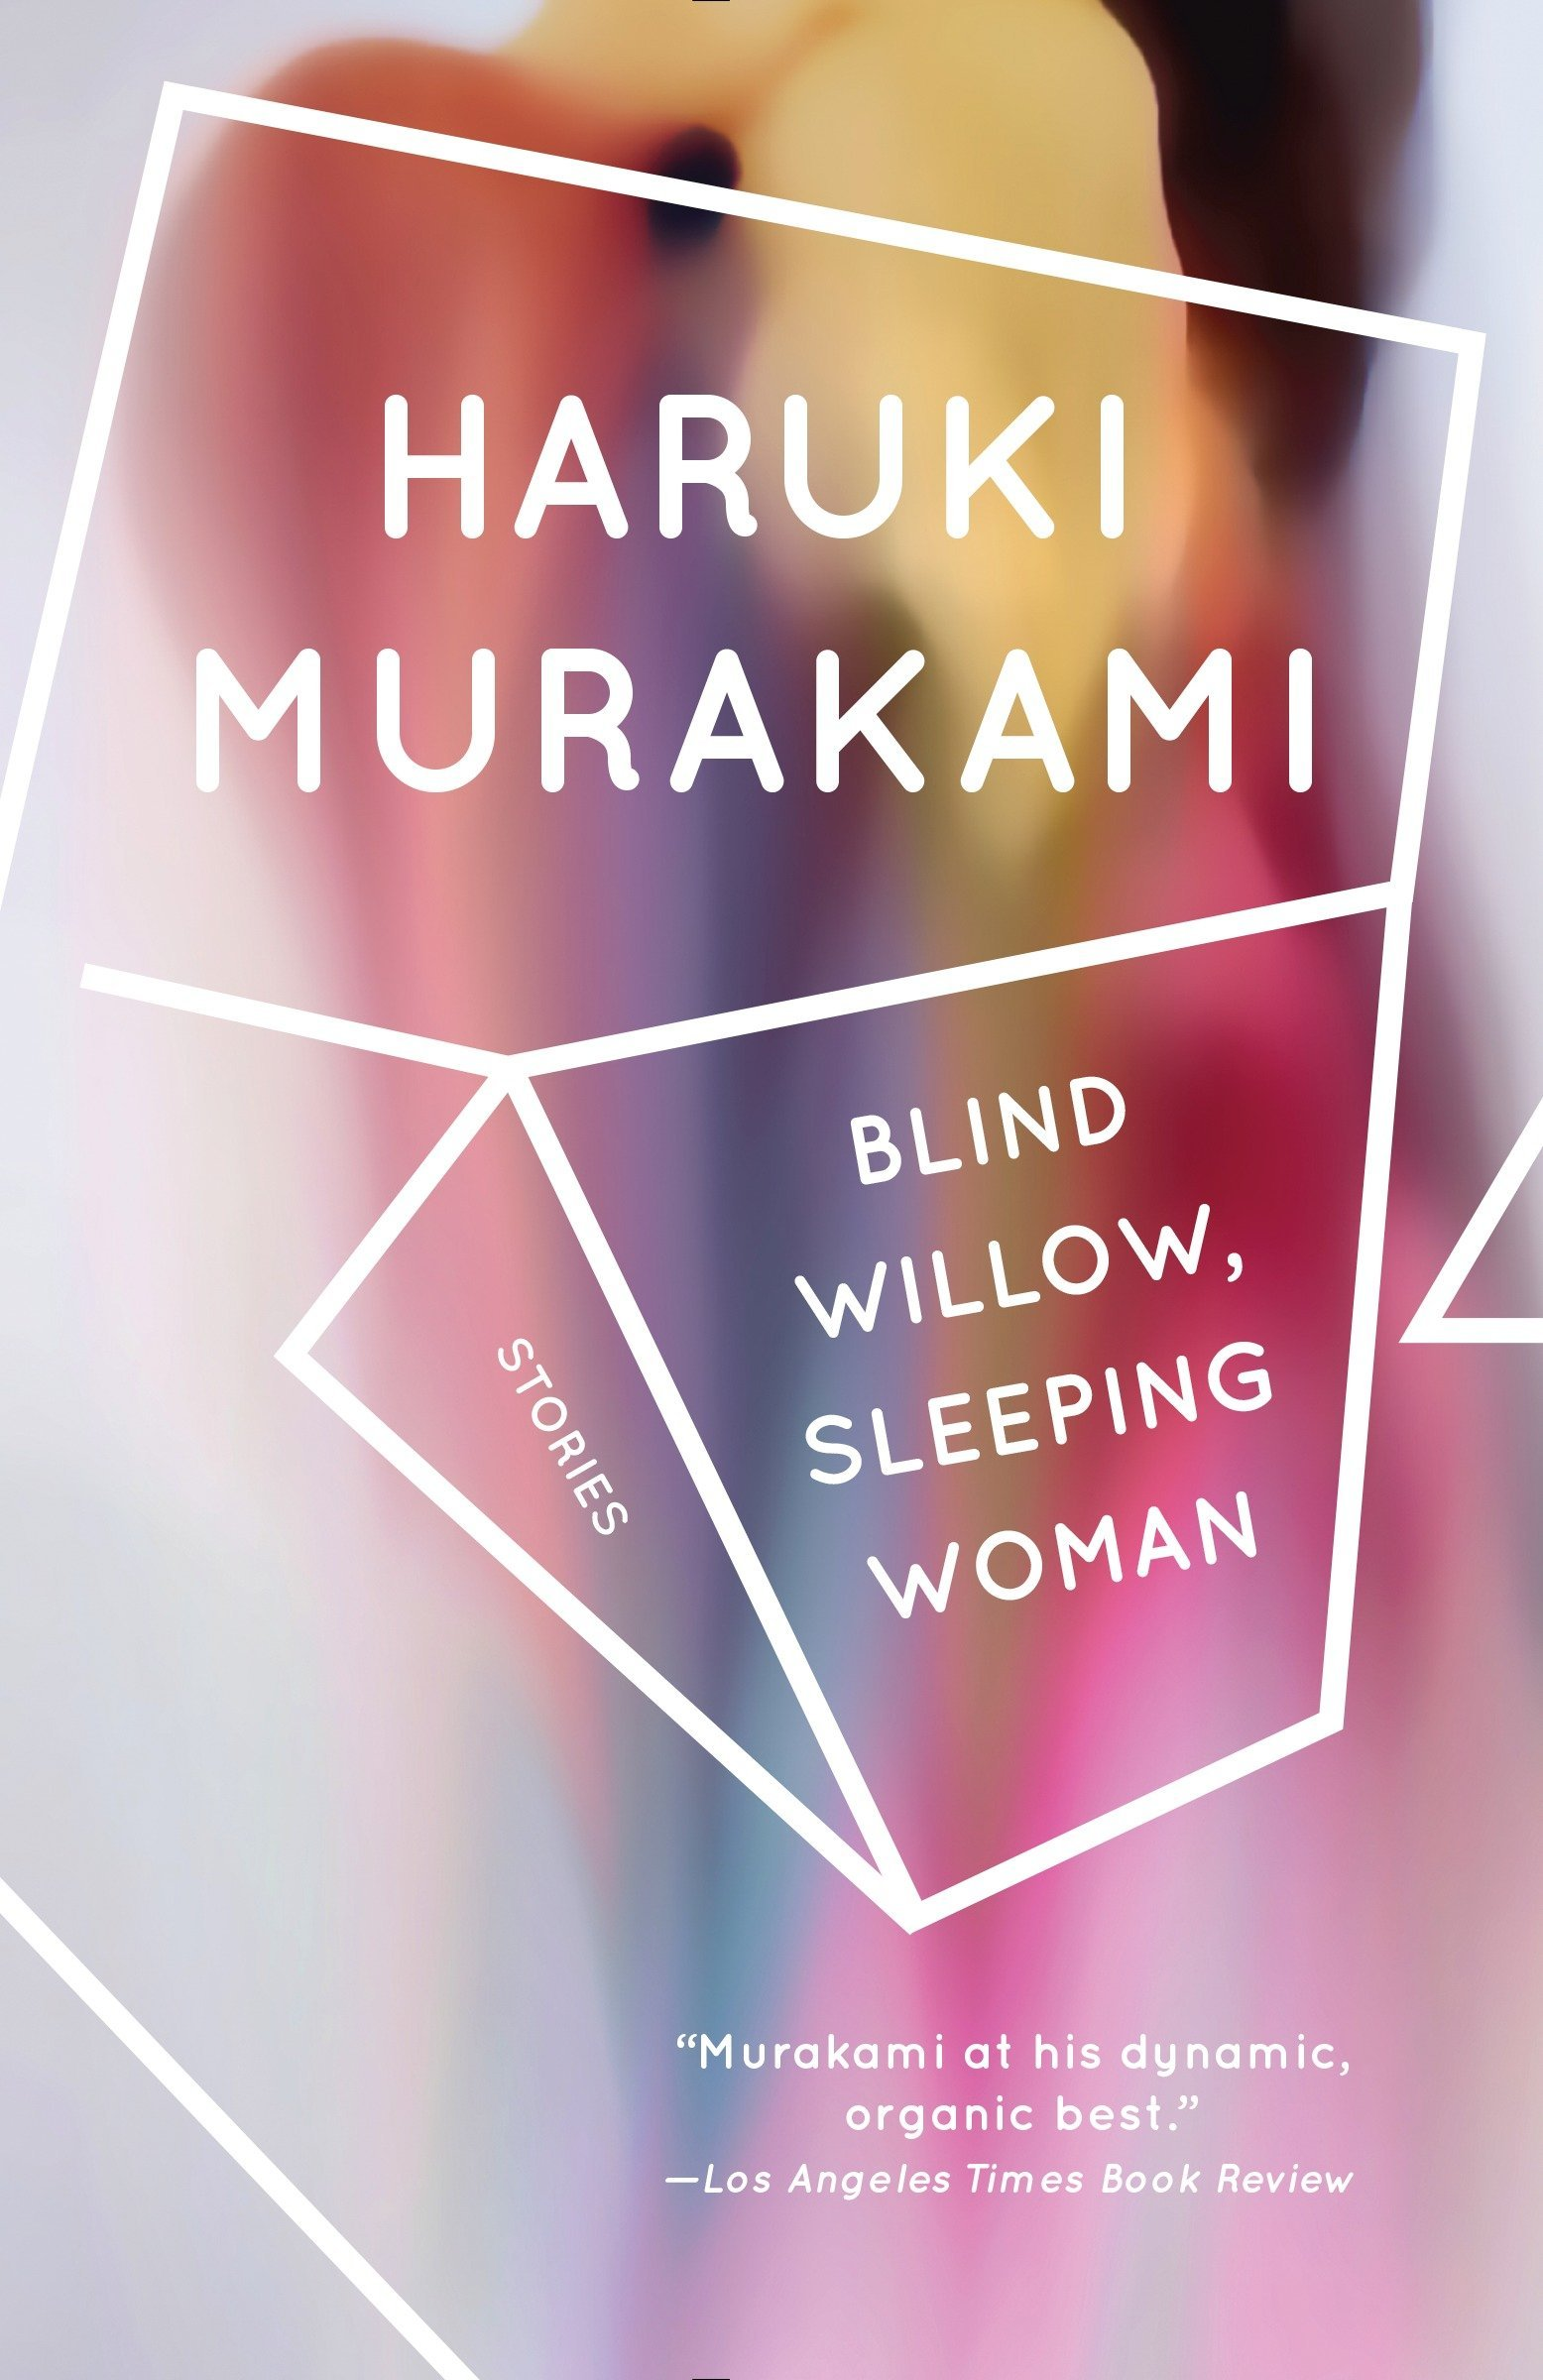 BLIND WILLOW, SLEEPING WOMAN BY HARUKI MURAKAMI - Length: 436 pages (24 short stories)Rating: 9/10Similar Books: A Guide to Being Born by Ramona AusubelBlind Willow, Sleeping Woman is a short story collection by Haruki Murakami, an author whose works are characterized by a dreamlike, ethereal atmosphere. The ambiguity behind his stories adds to ever-present narrative tension, making his works particularly enjoyable. While it's hard to discern precise meaning or motive of these whimsical short stories, reading it without focusing too much on meaning allows one to appreciate Murakami's masterfully written prose. Such ambiguity creates strange, fascinatingly structured stories. Murakami errs on the odd side, but I would strongly recommend this book to anyone who enjoys similarly odd but riveting prose.